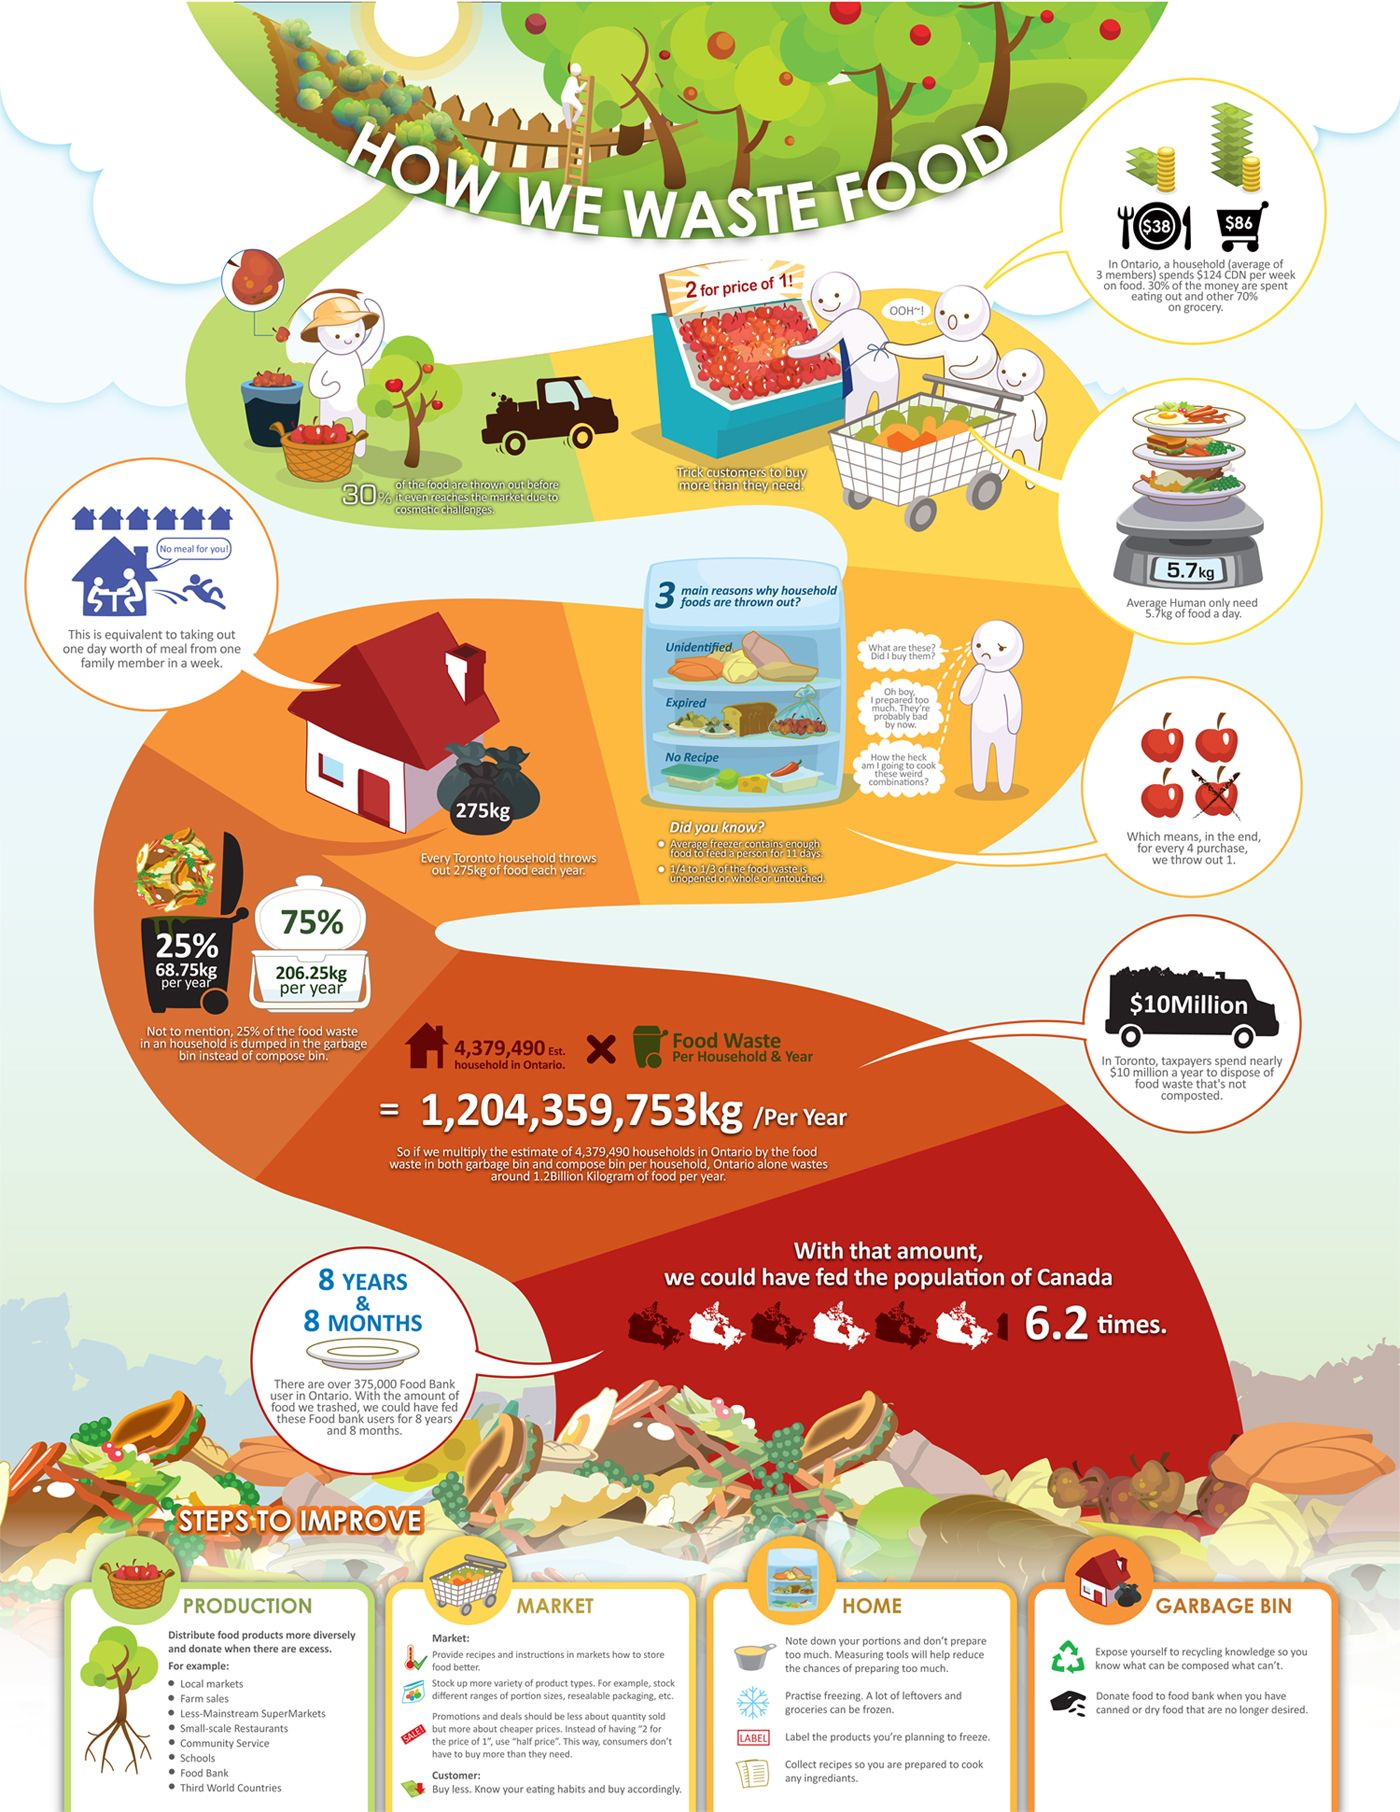 How We Waste Food From Sustainontario Created By Joanna